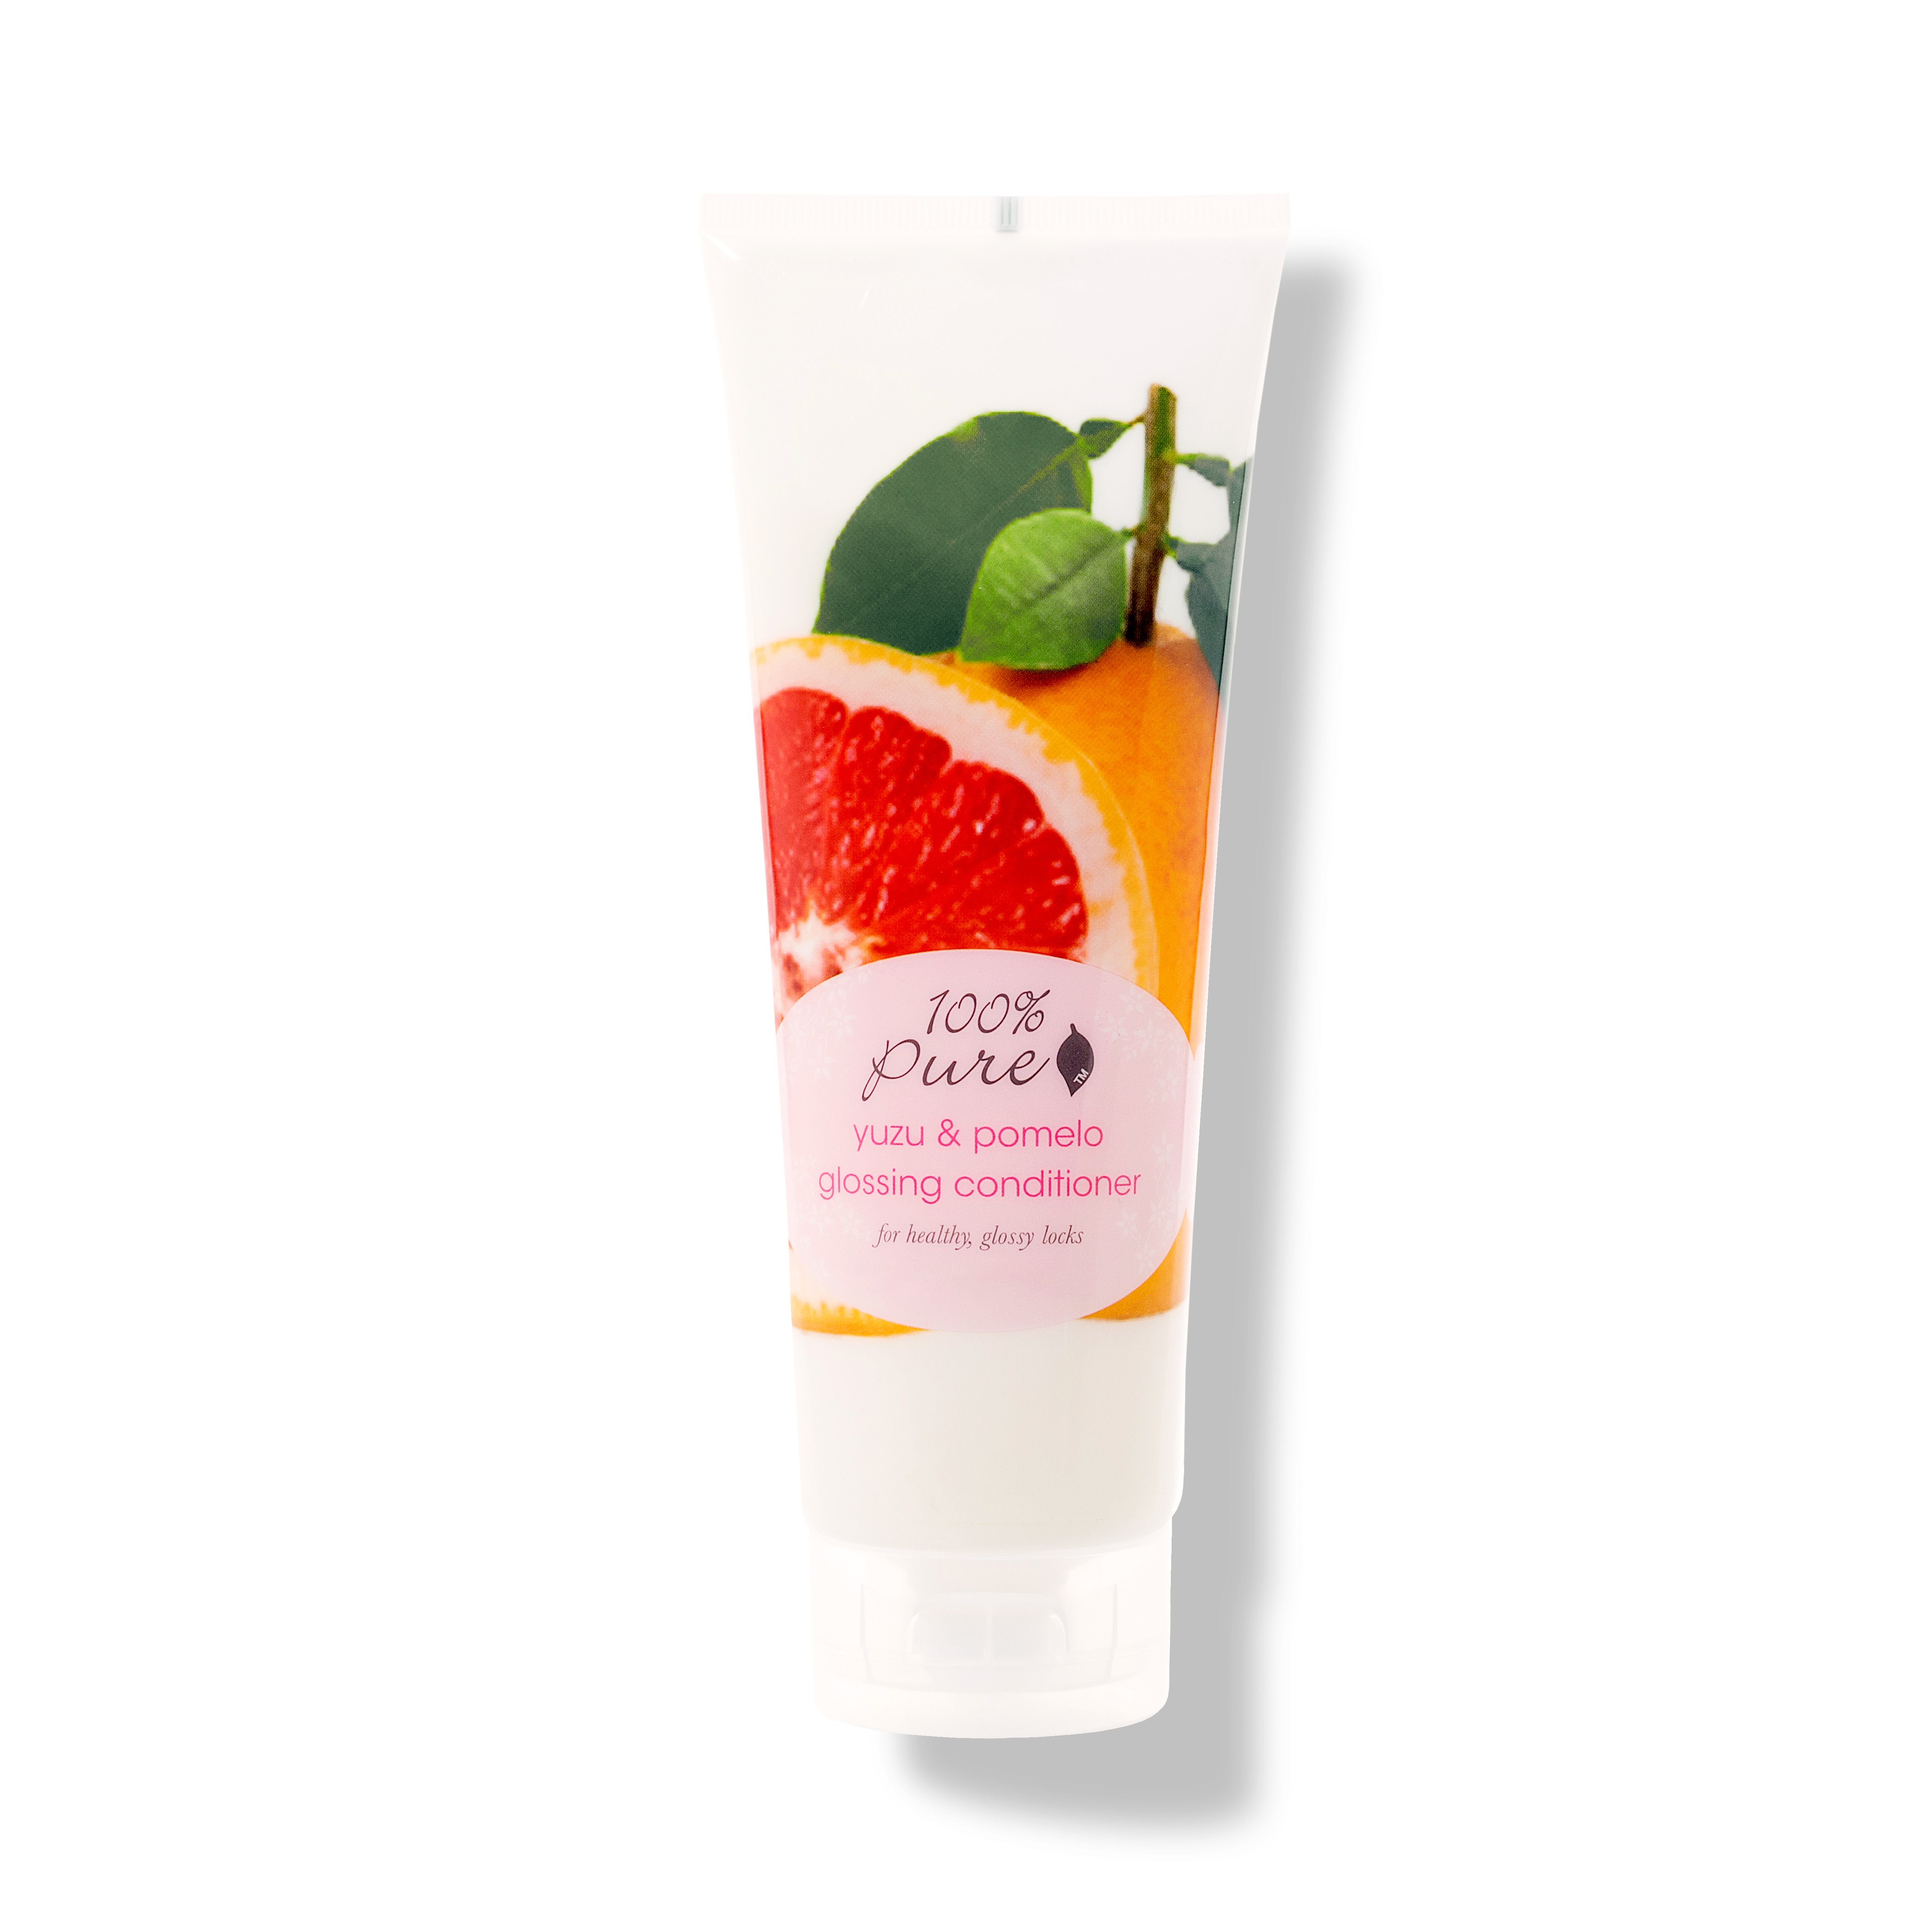 Product Grid - Yuzu & Pomelo Glossing Conditioner